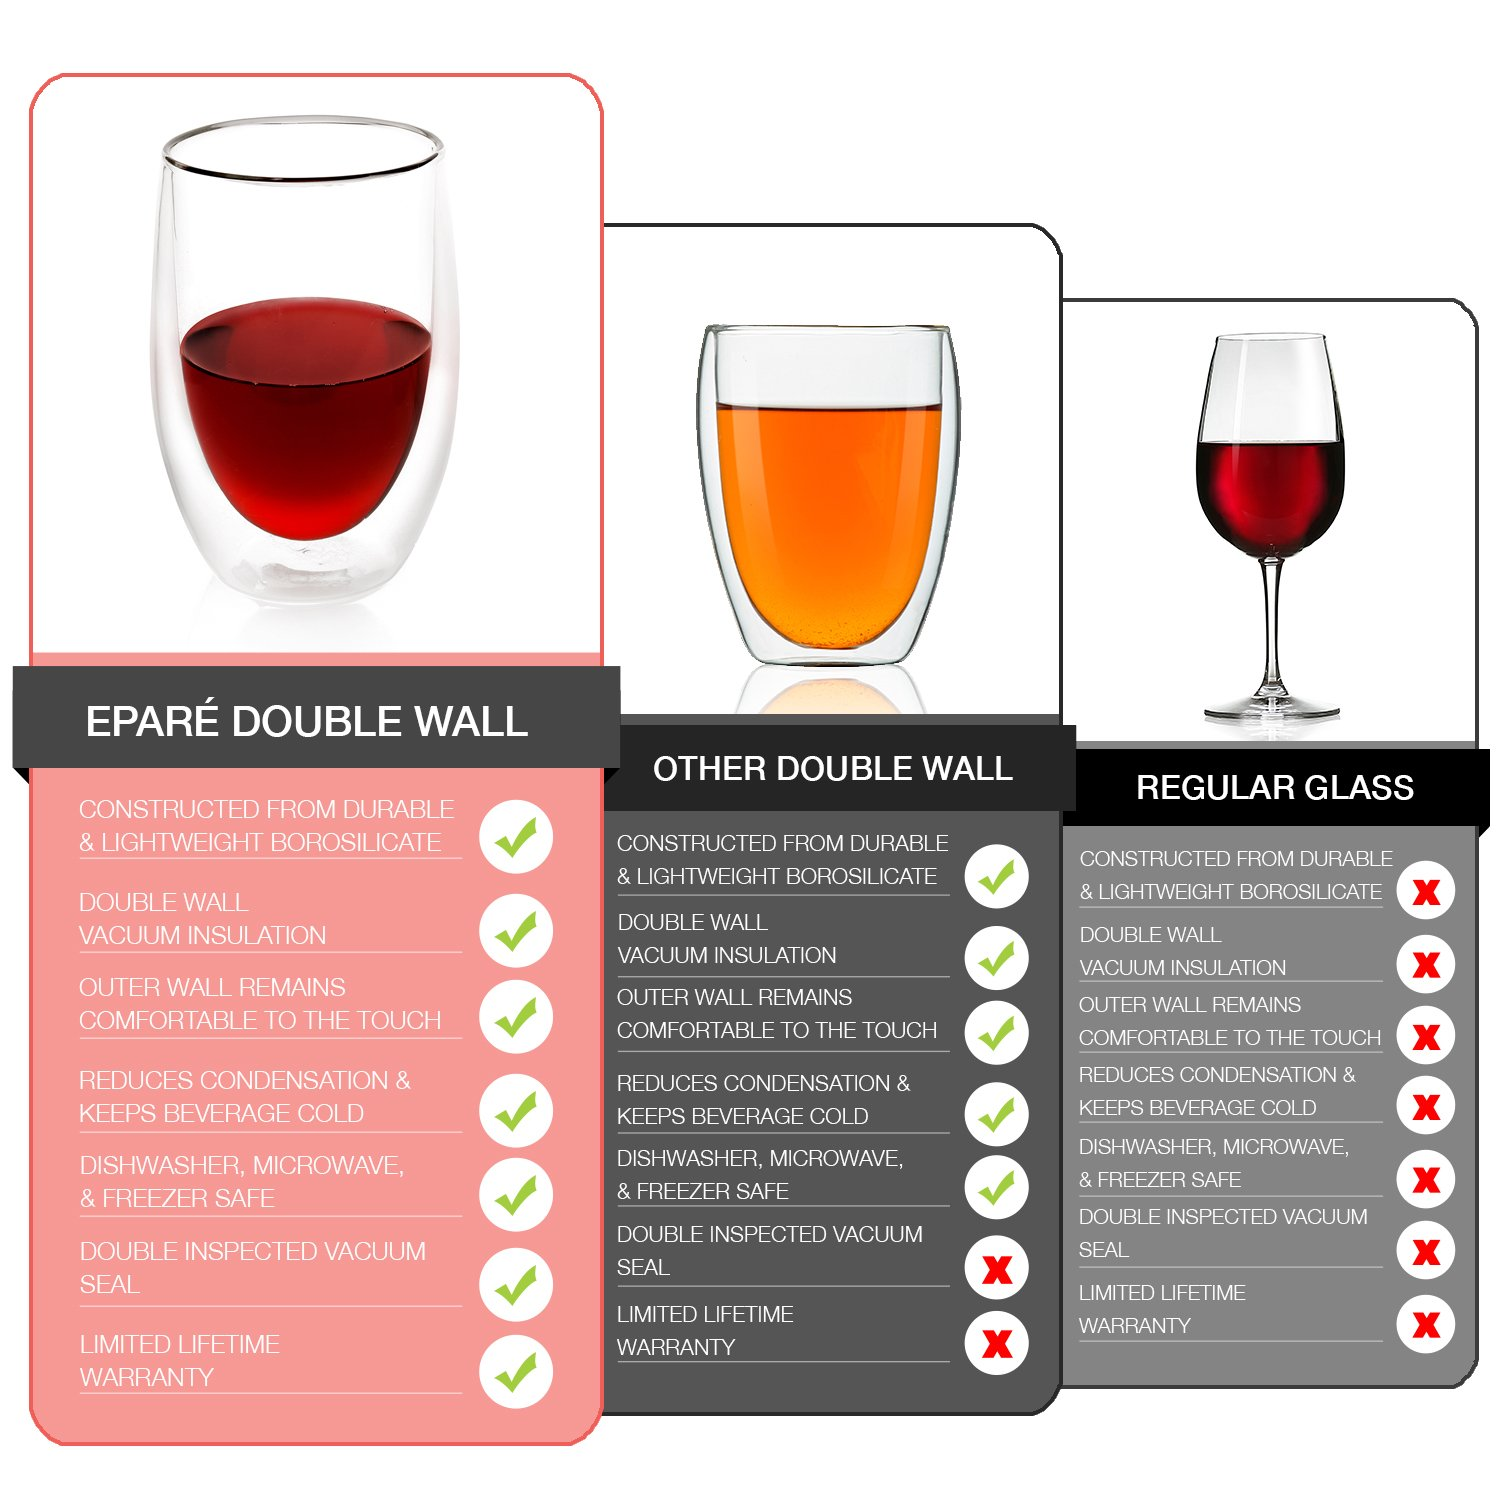 Eparé Wine Glasses, Insulated Stemless Tumbler Set (13 oz, 390 ml) – Double Wall Drinking Glass – Cup for Red, White, Rosé, Champagne, Cocktails, Juice, or Water – 2 Glasses by eparé (Image #2)